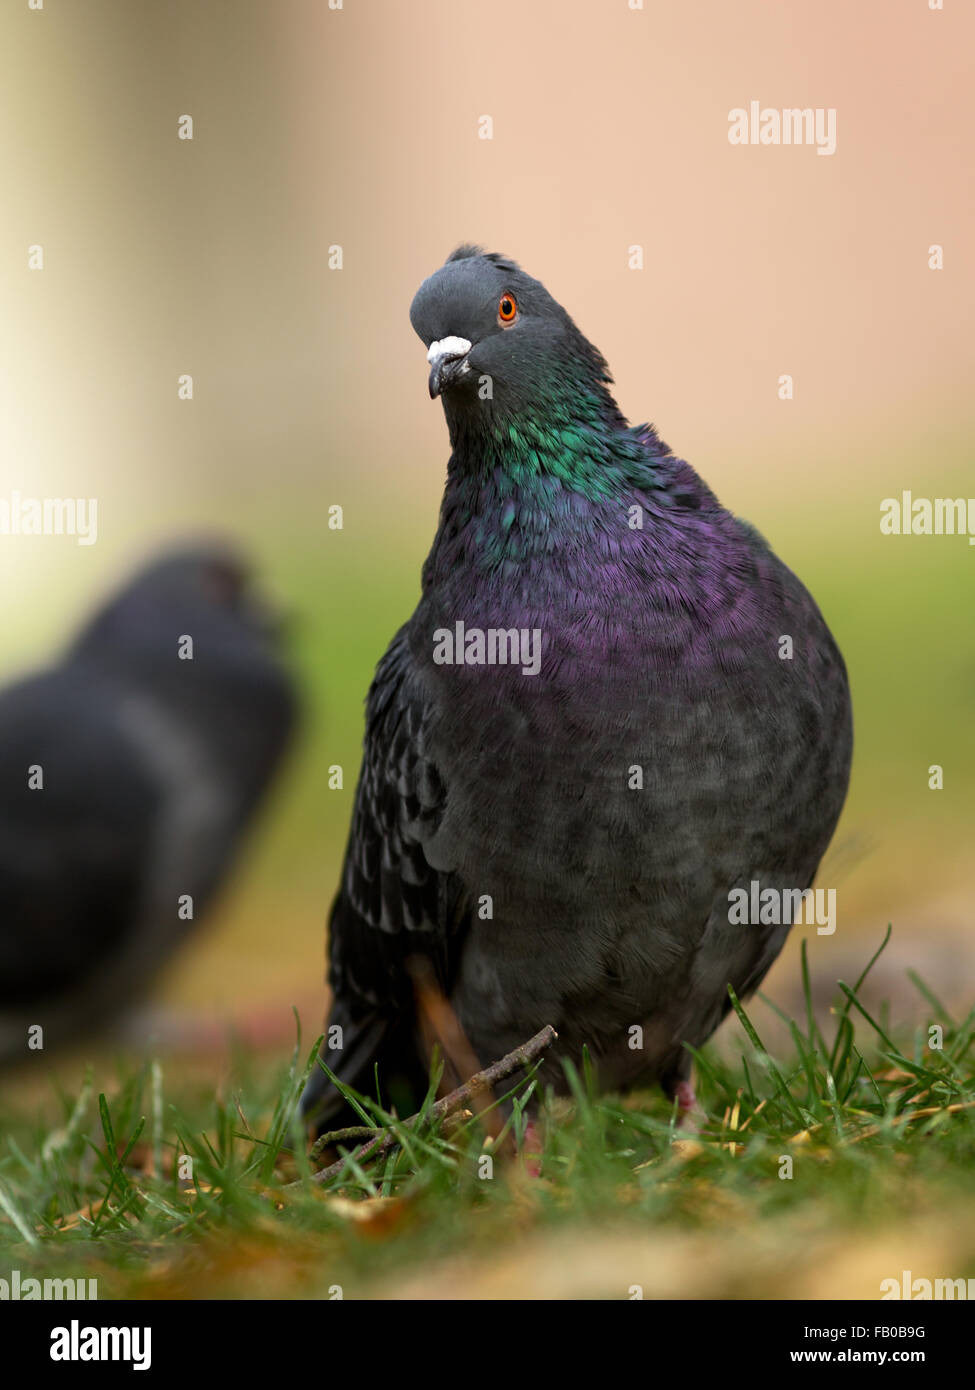 Feral pigeon is a common bird found in cities, so is also called as city pigeon. - Stock Image